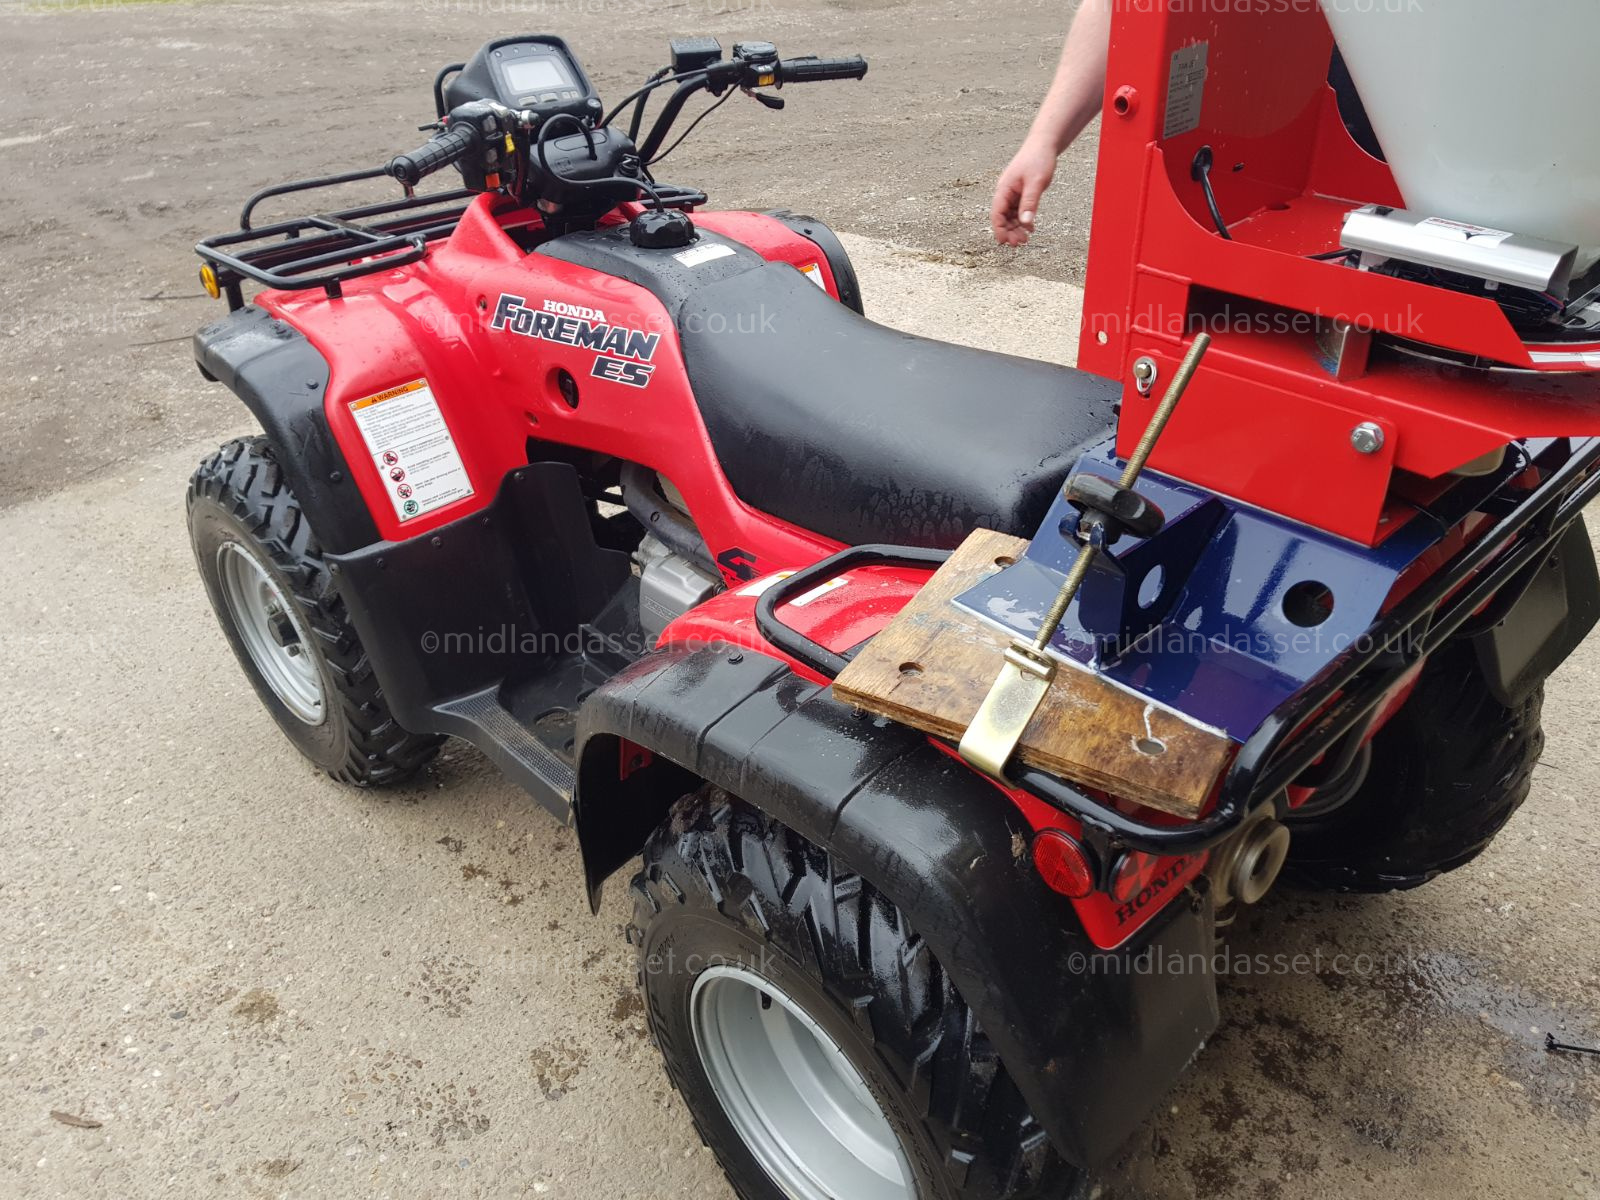 Lot 155 - 2004 HONDA TRX 450cc QUAD BIKE